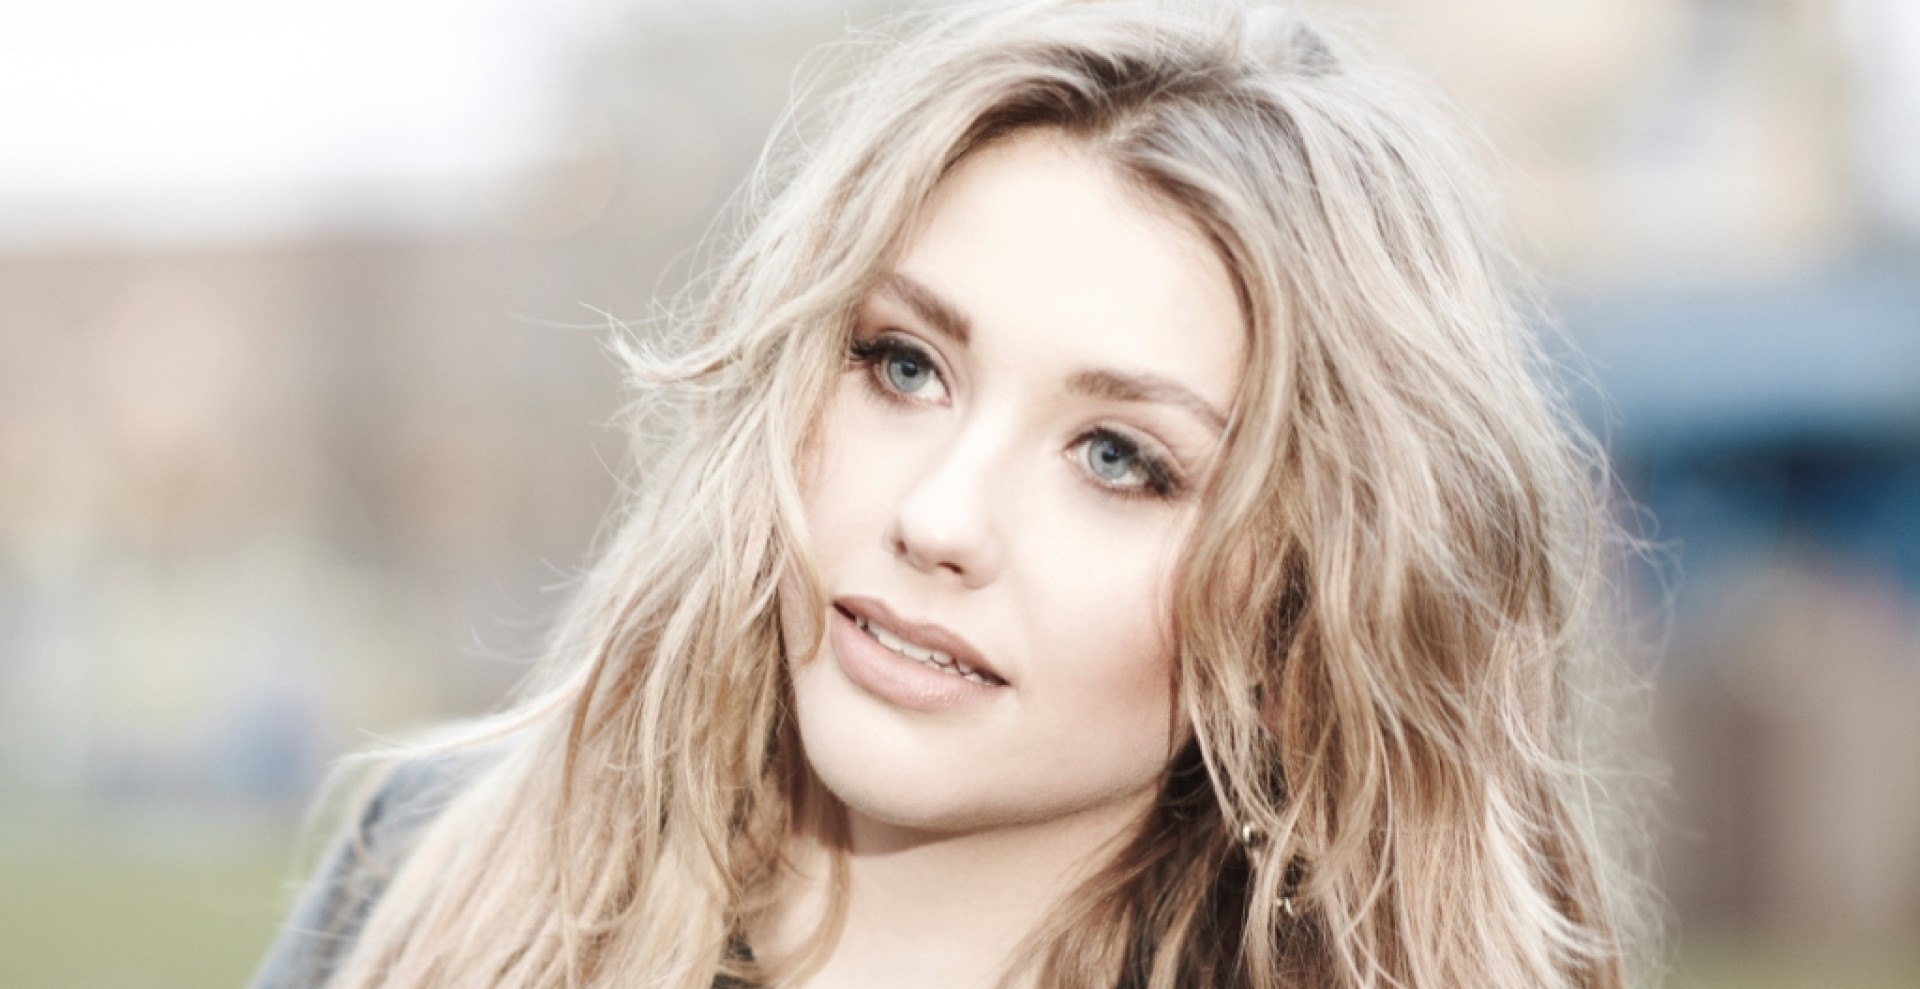 Ella-Henderson-New-Press-Image-1